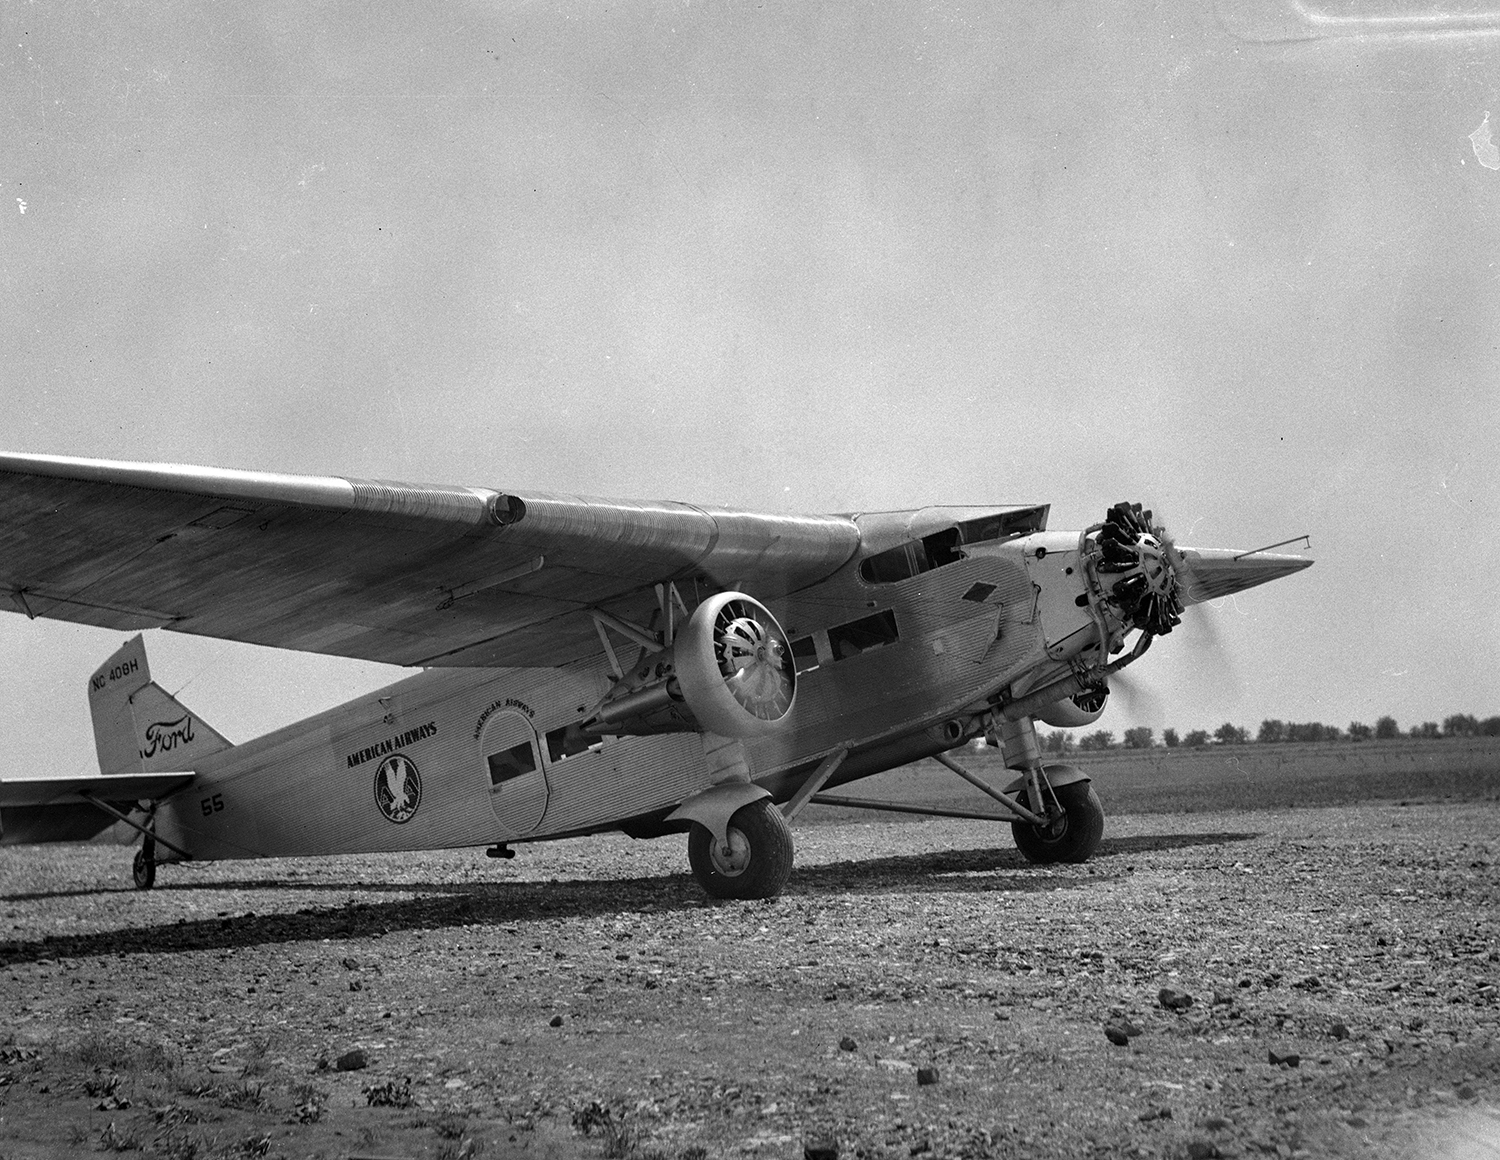 American Airlines Ford Tri-Motor airplane at municipal airport, ca. 1930. File/The State Journal-Register